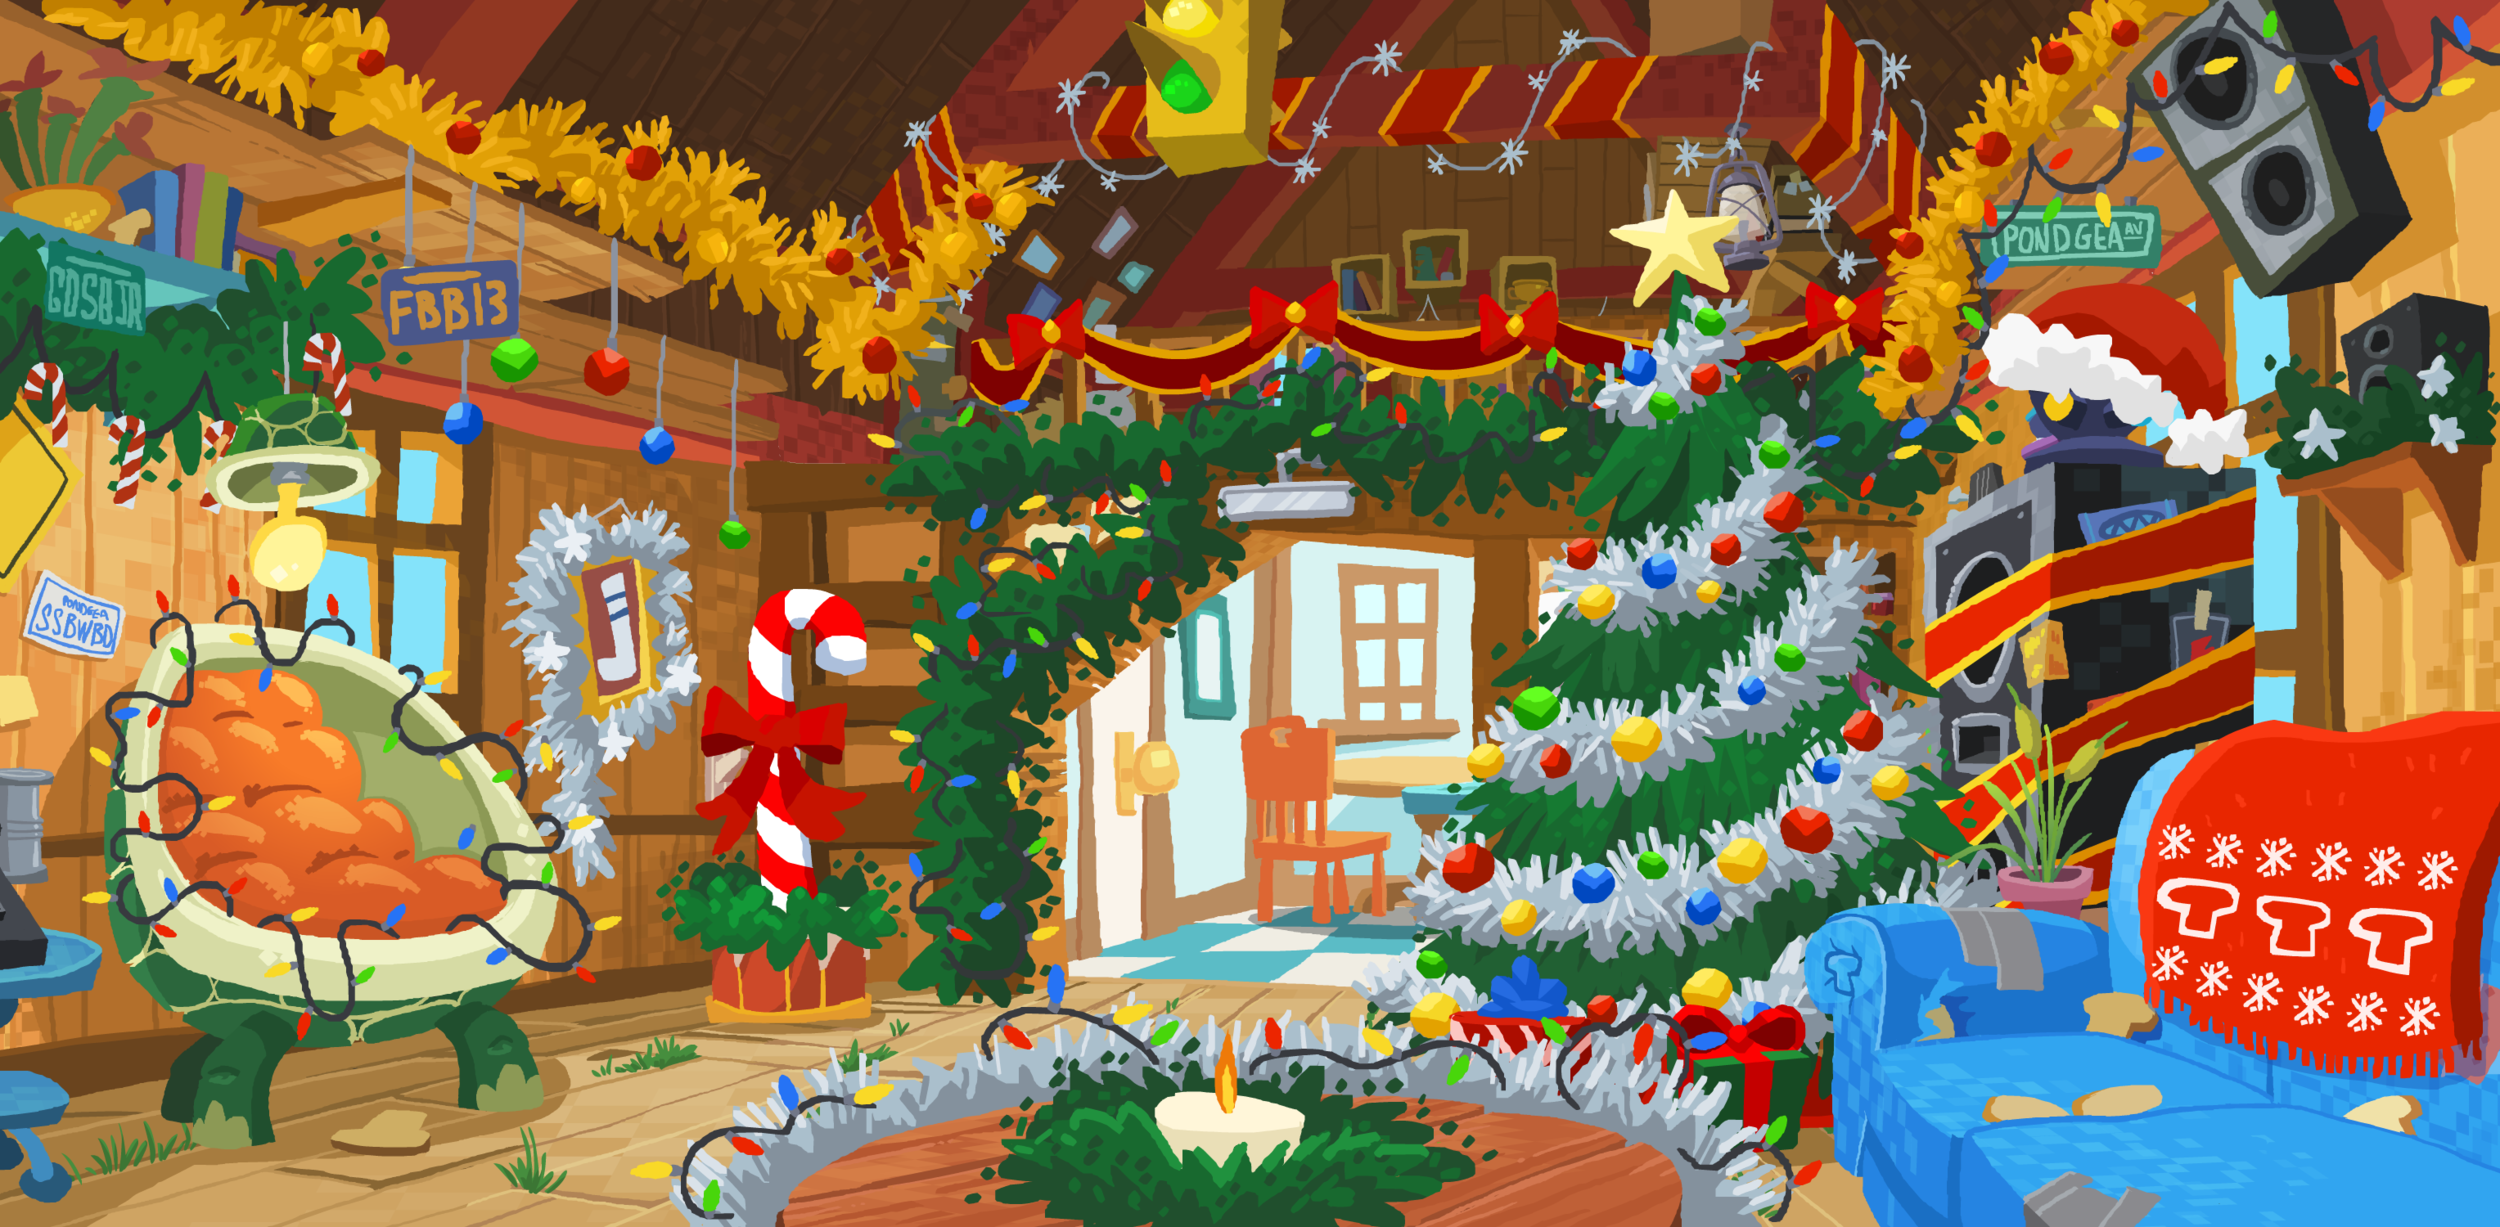 BWS_LivingRoomHIntChristmas_Color.png